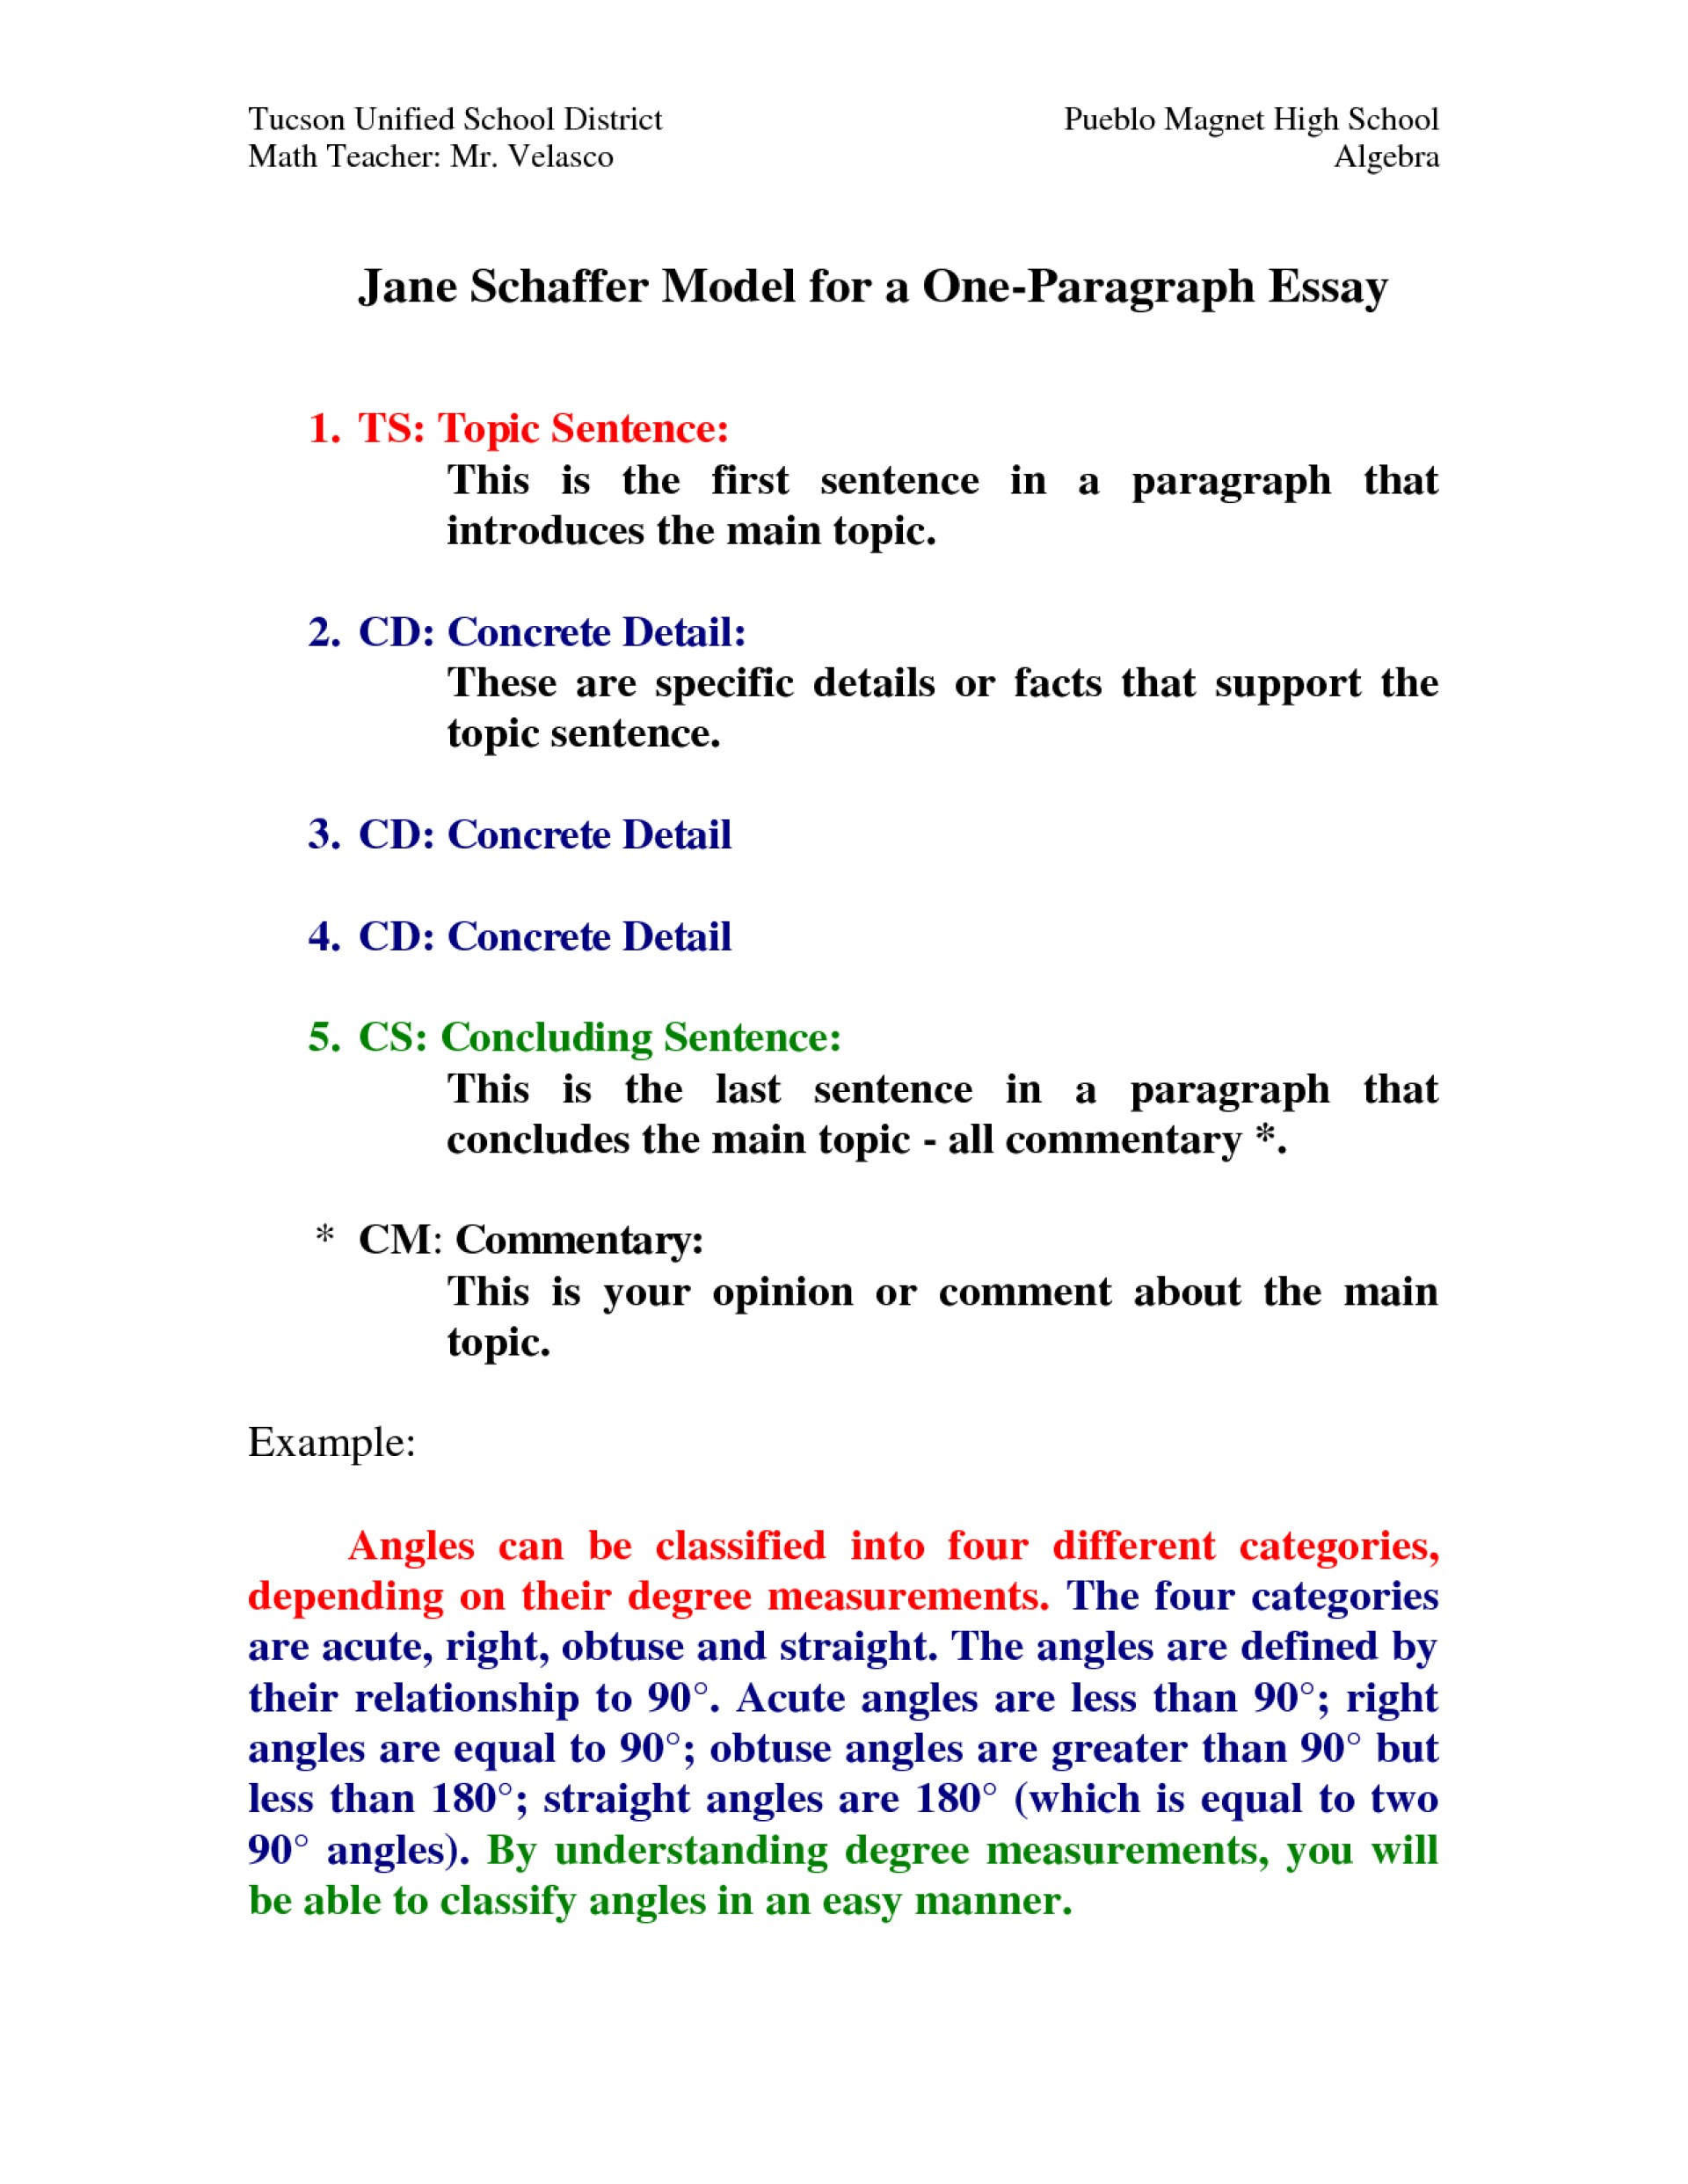 006 Essay Example How Many Sentences Are In Paragraph For Wondrous A An College Should Be Of Each 1920